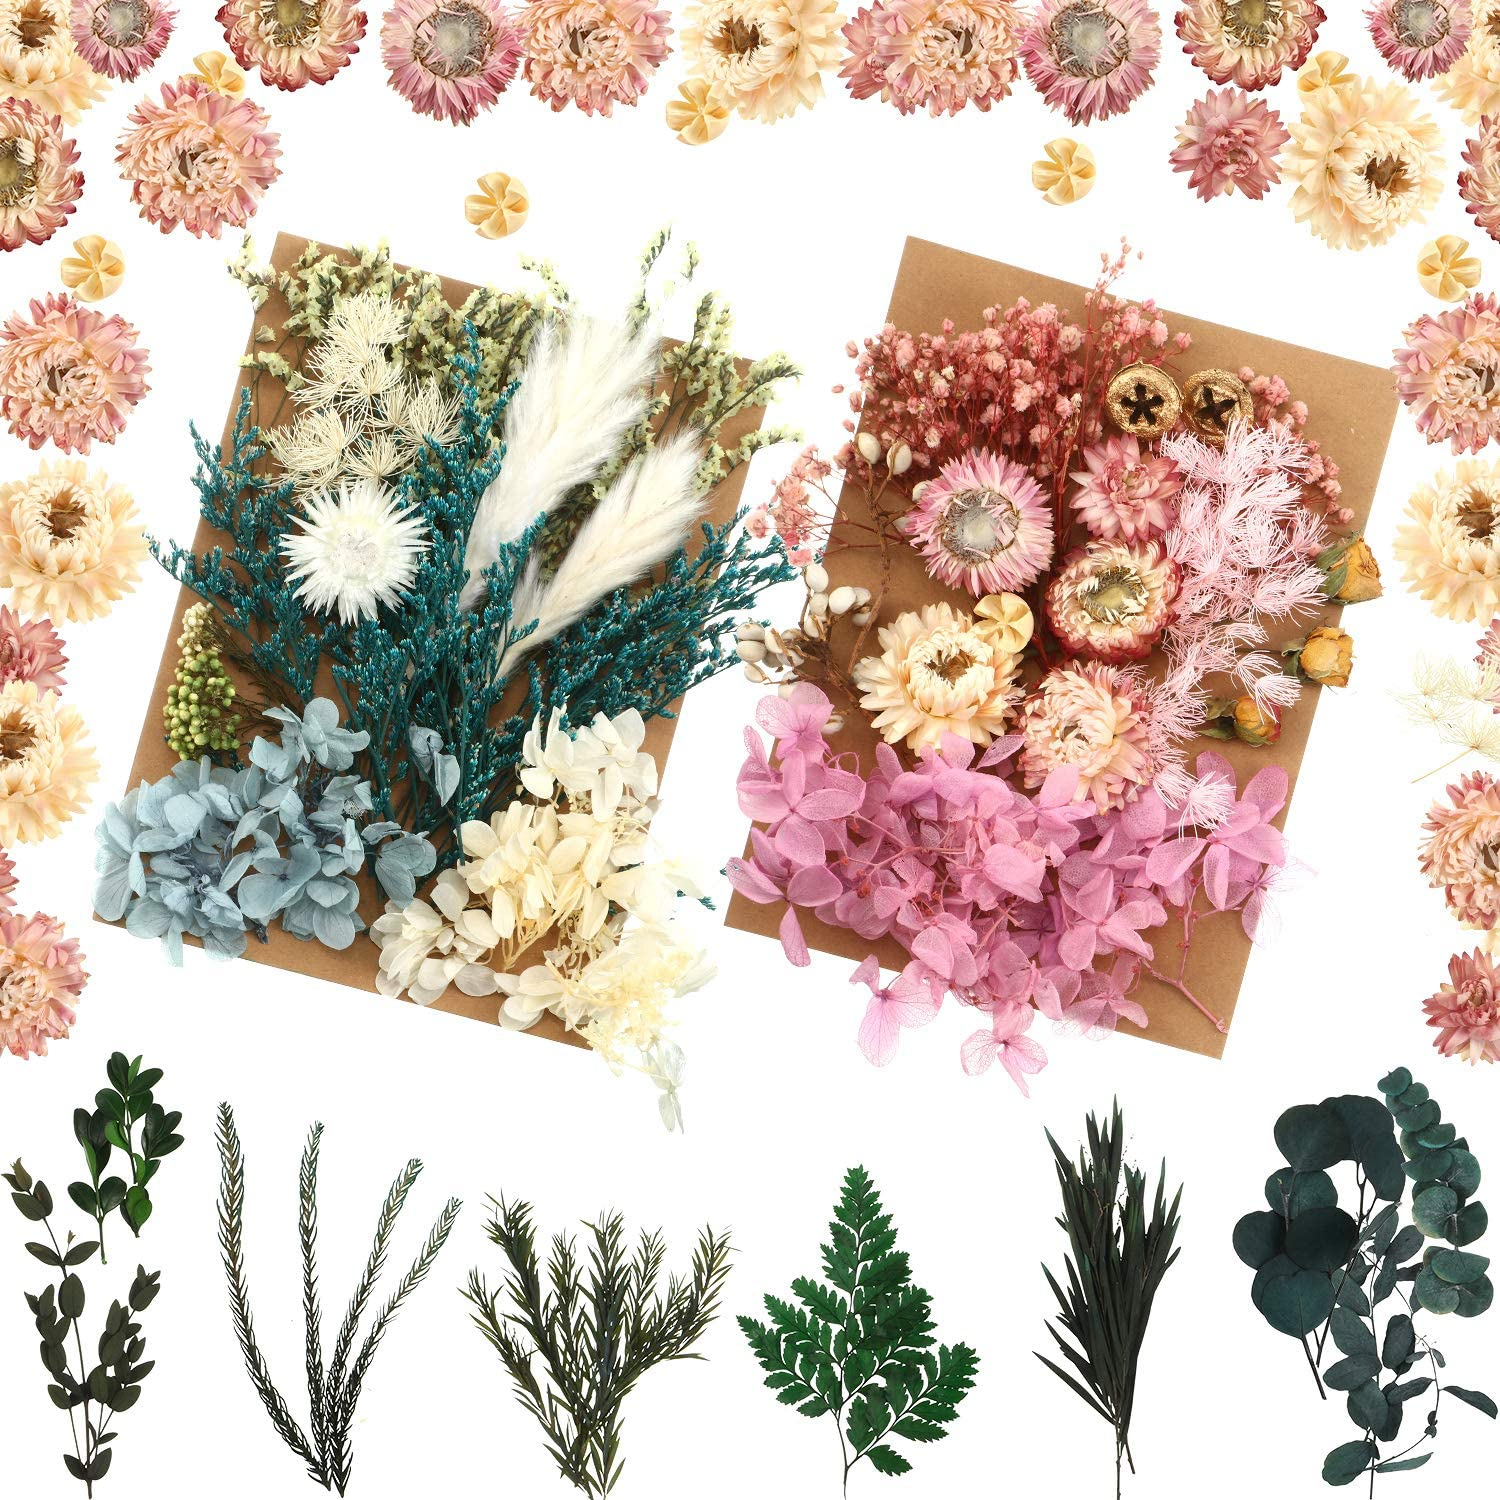 3 Sets Natural Dried Flowers Real Dried Flowers Assorted Colorful Dry Flower Leaves Petals Mixed Dried Plants for for DIY Candle Soap Resin Jewelry Earring Crafts Home Decoration